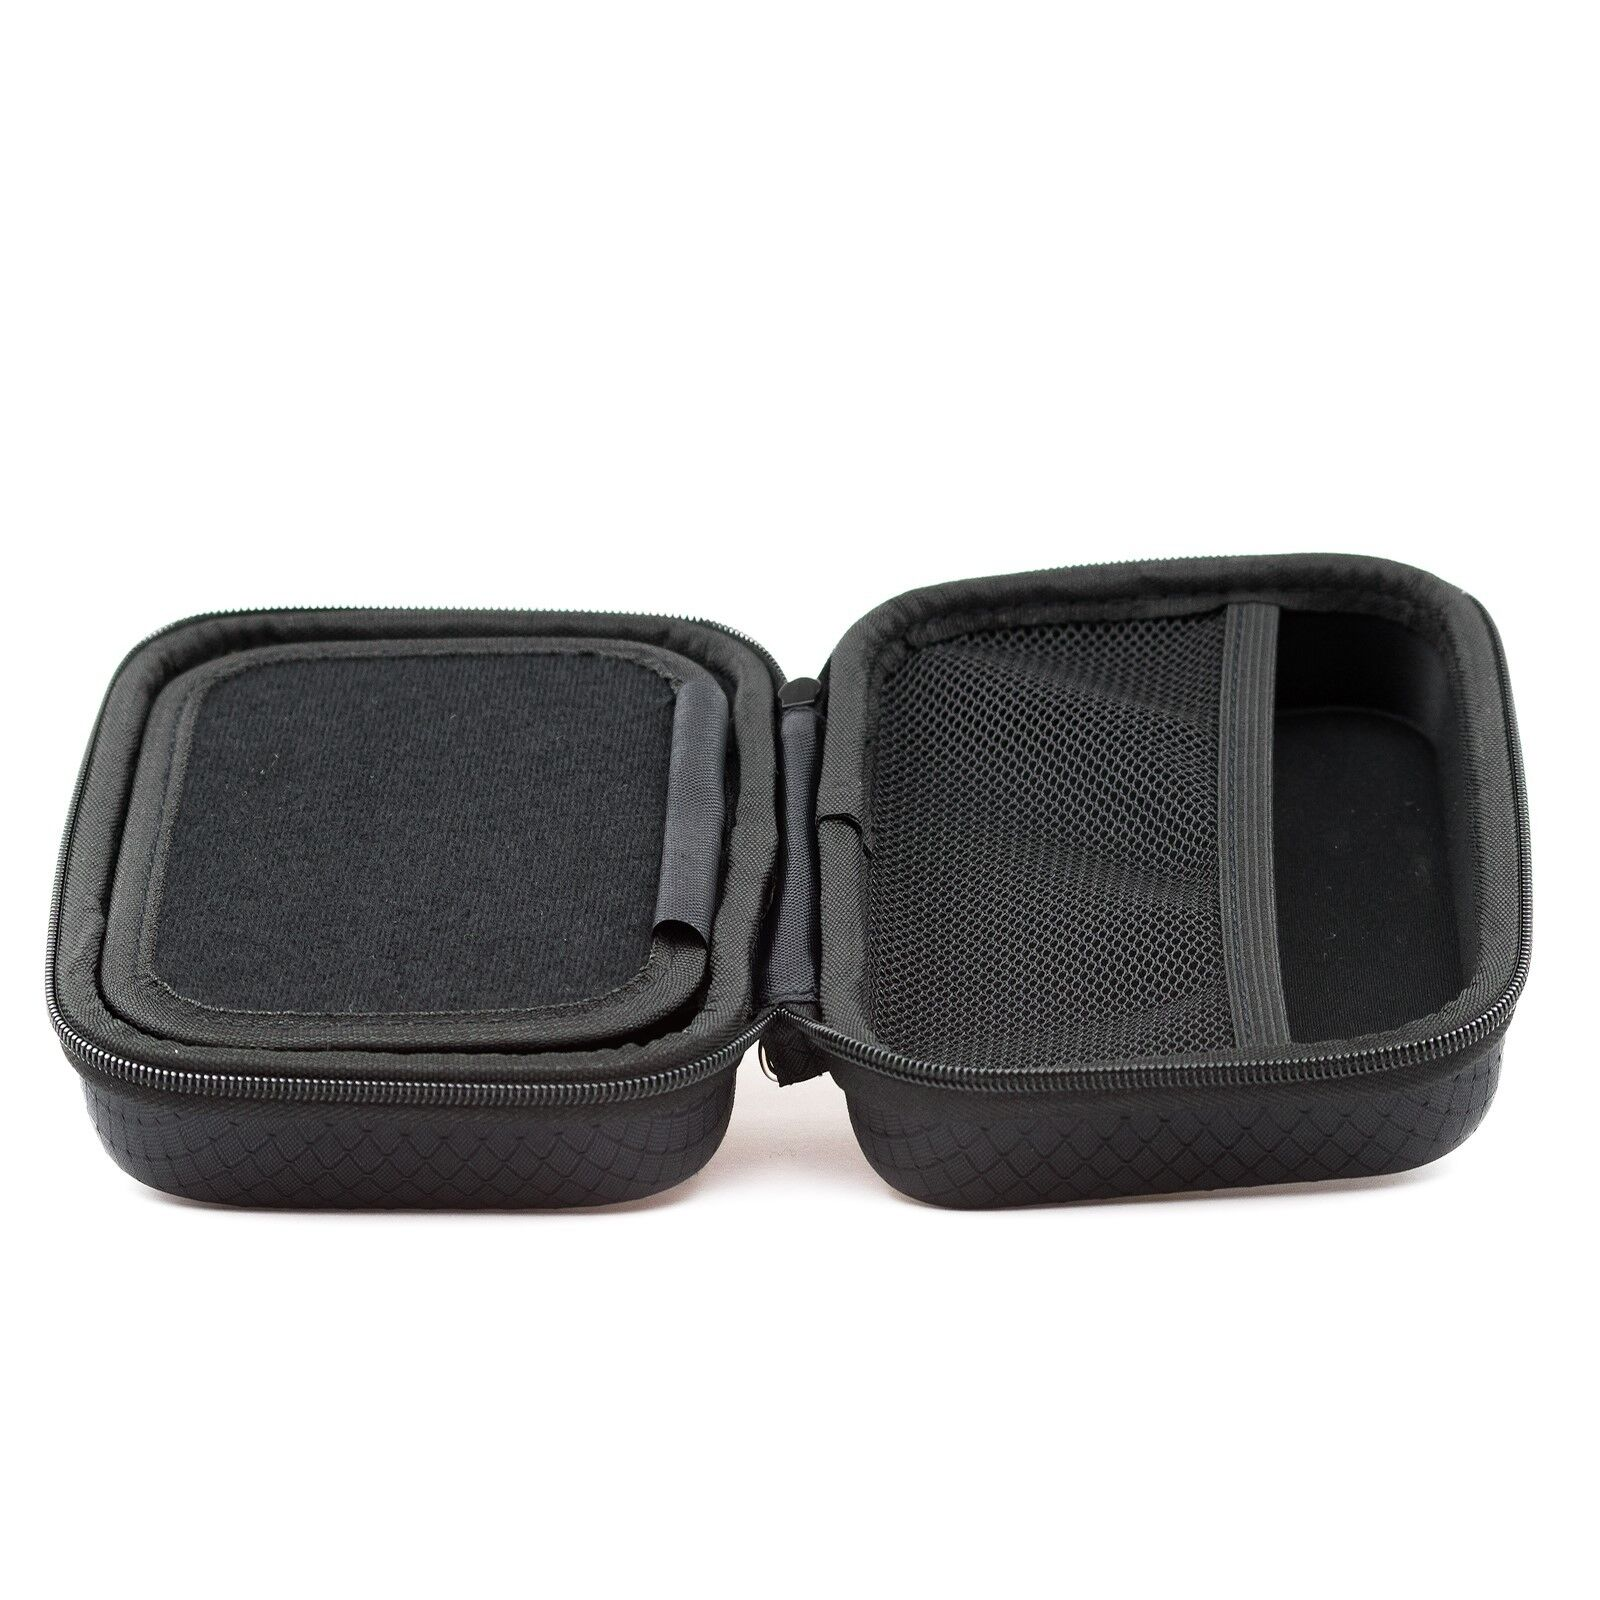 hard carry case for tomtom go basic 5 inch 5200 520 via. Black Bedroom Furniture Sets. Home Design Ideas